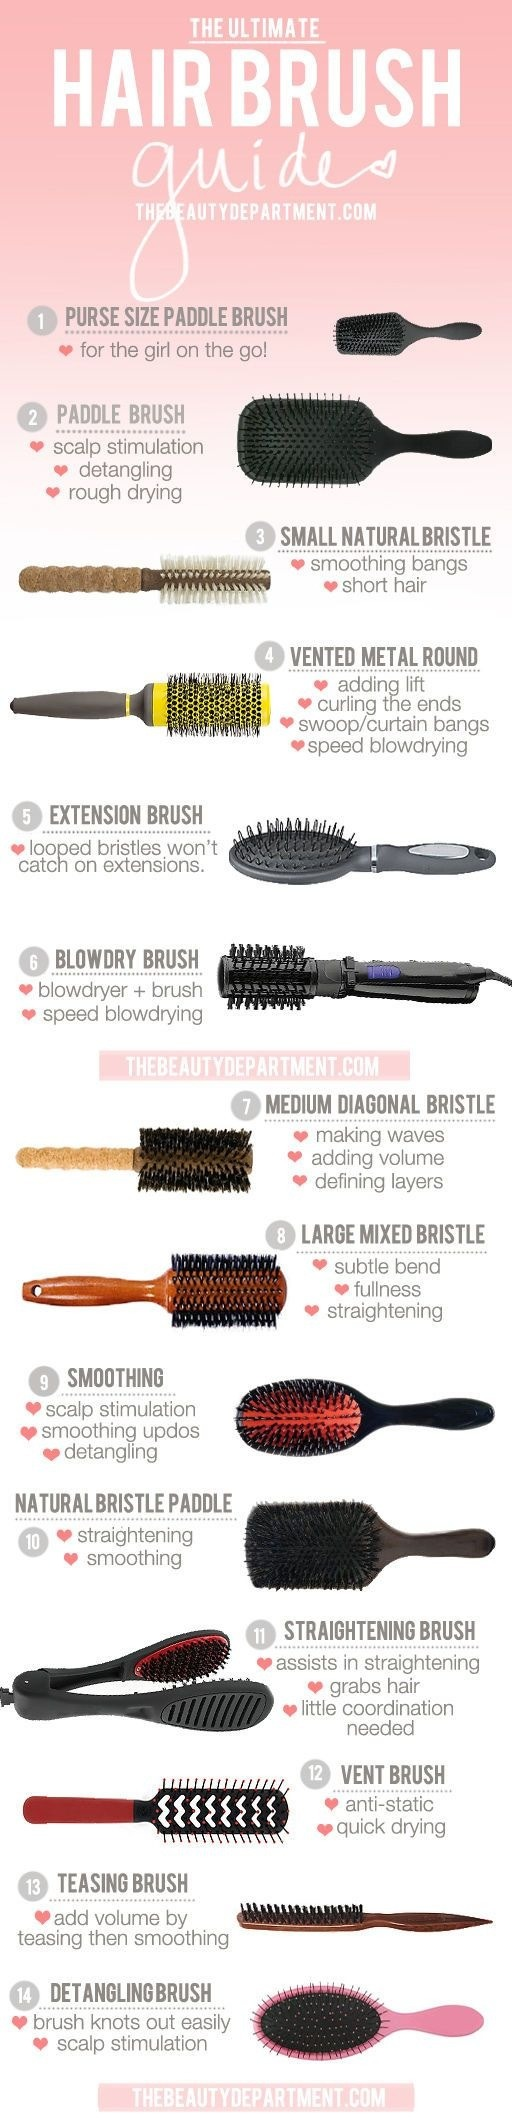 Brush Guide!